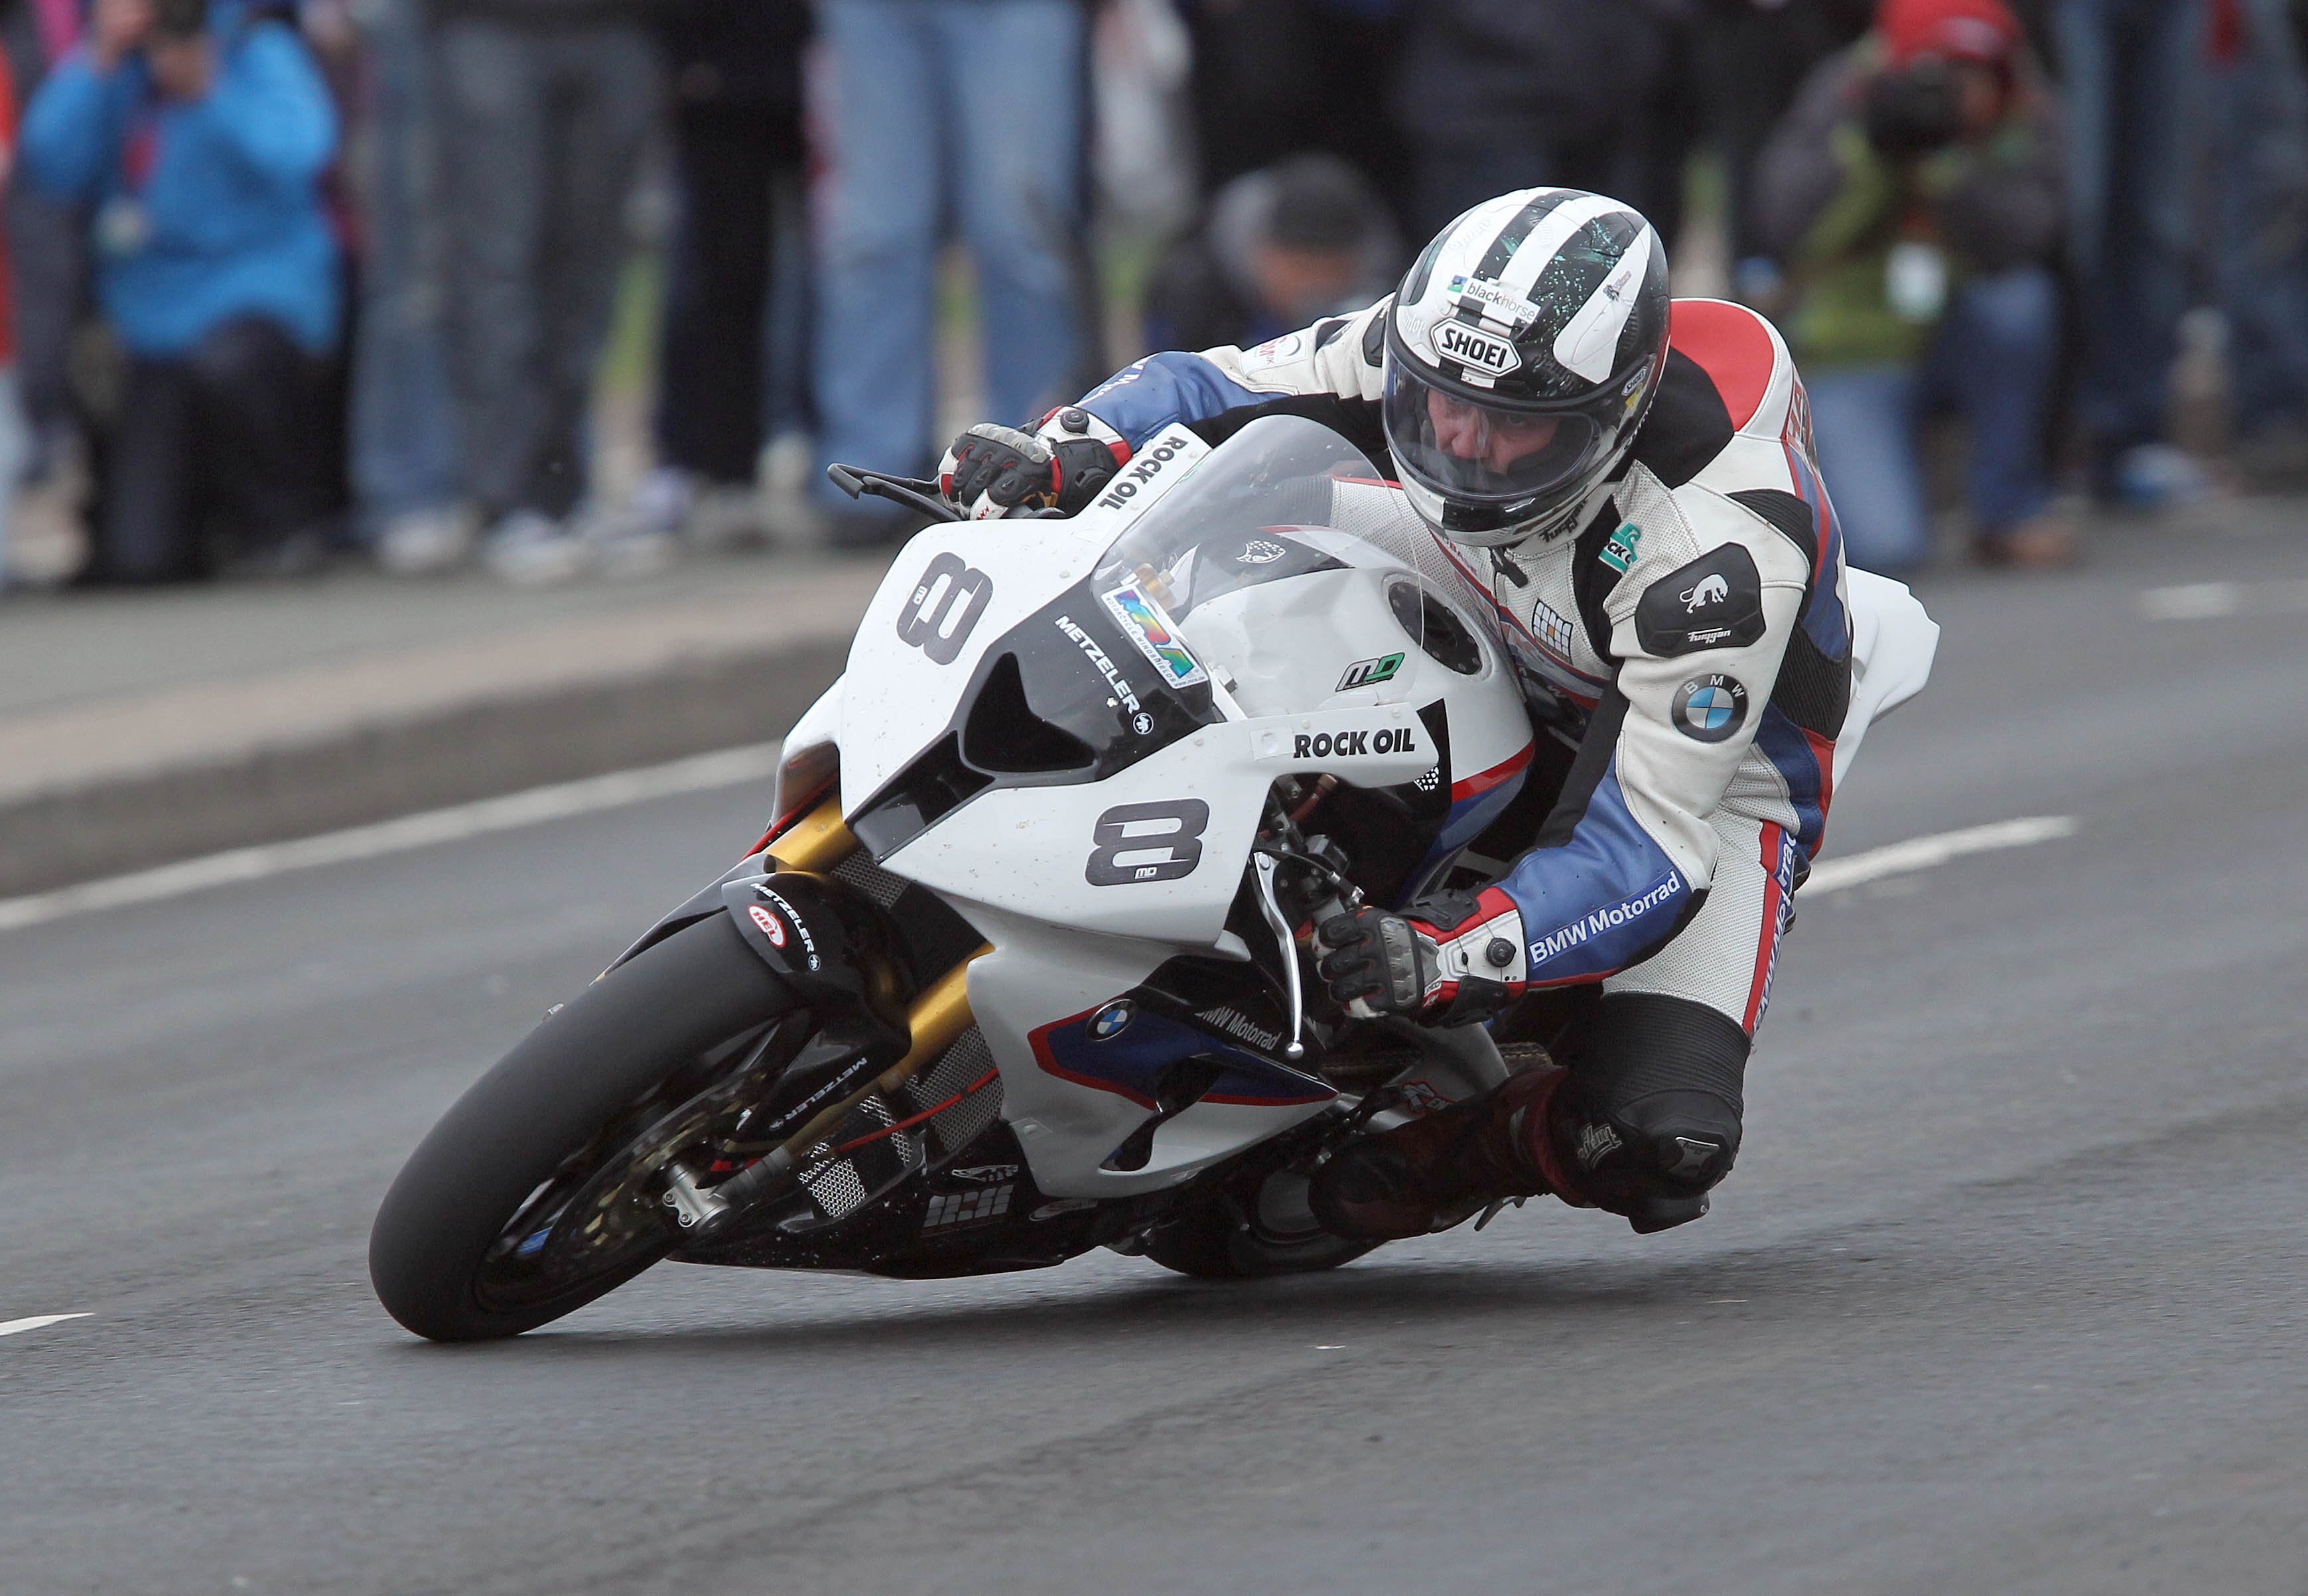 Bikes: Michael Dunlop dominates Northwest 200 with two wins and man of the meeting trophy